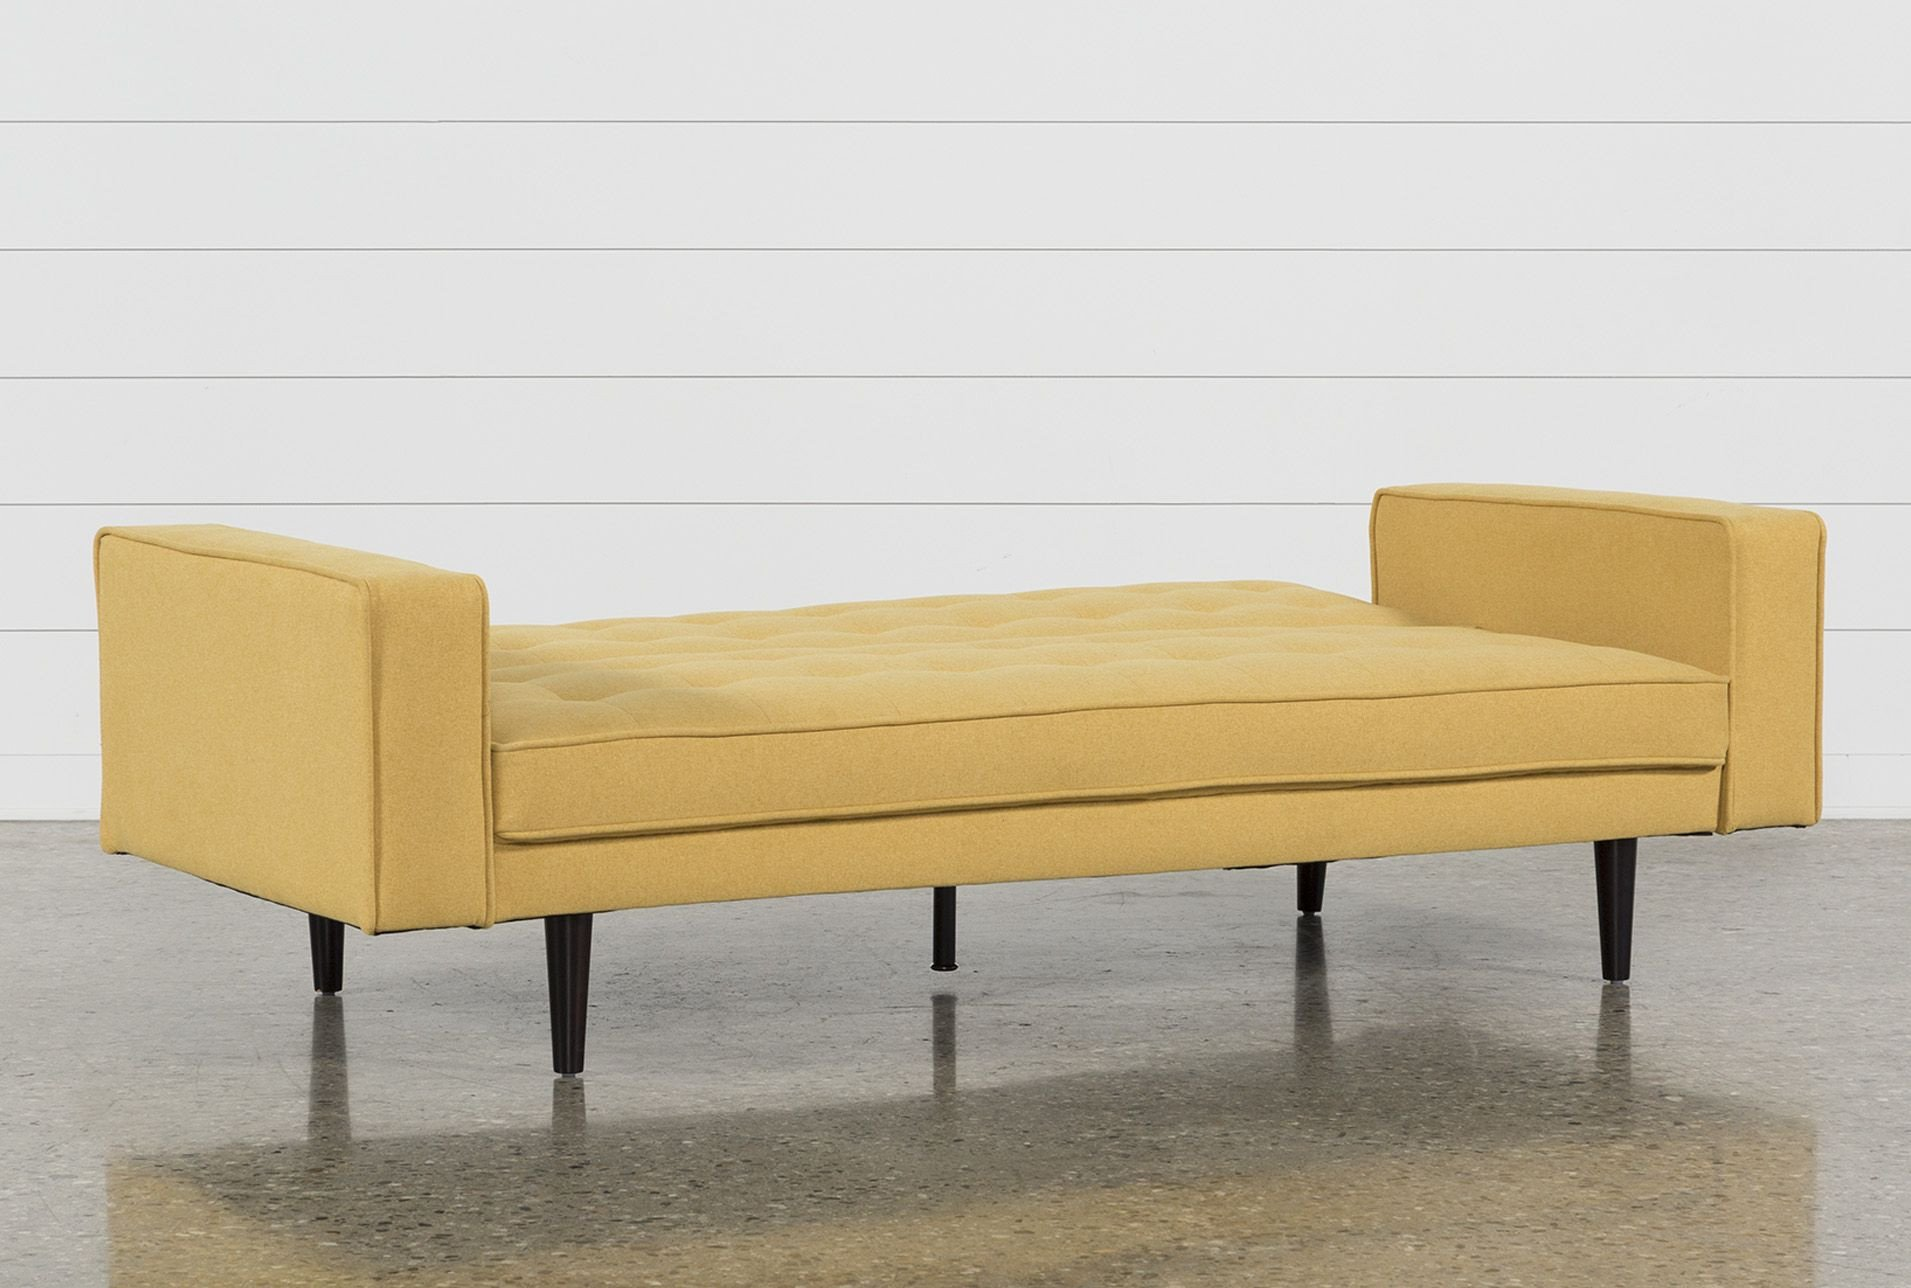 Bedroom Bench with Back Beautiful Petula Mustard Convertible sofa Bed Yellow $395